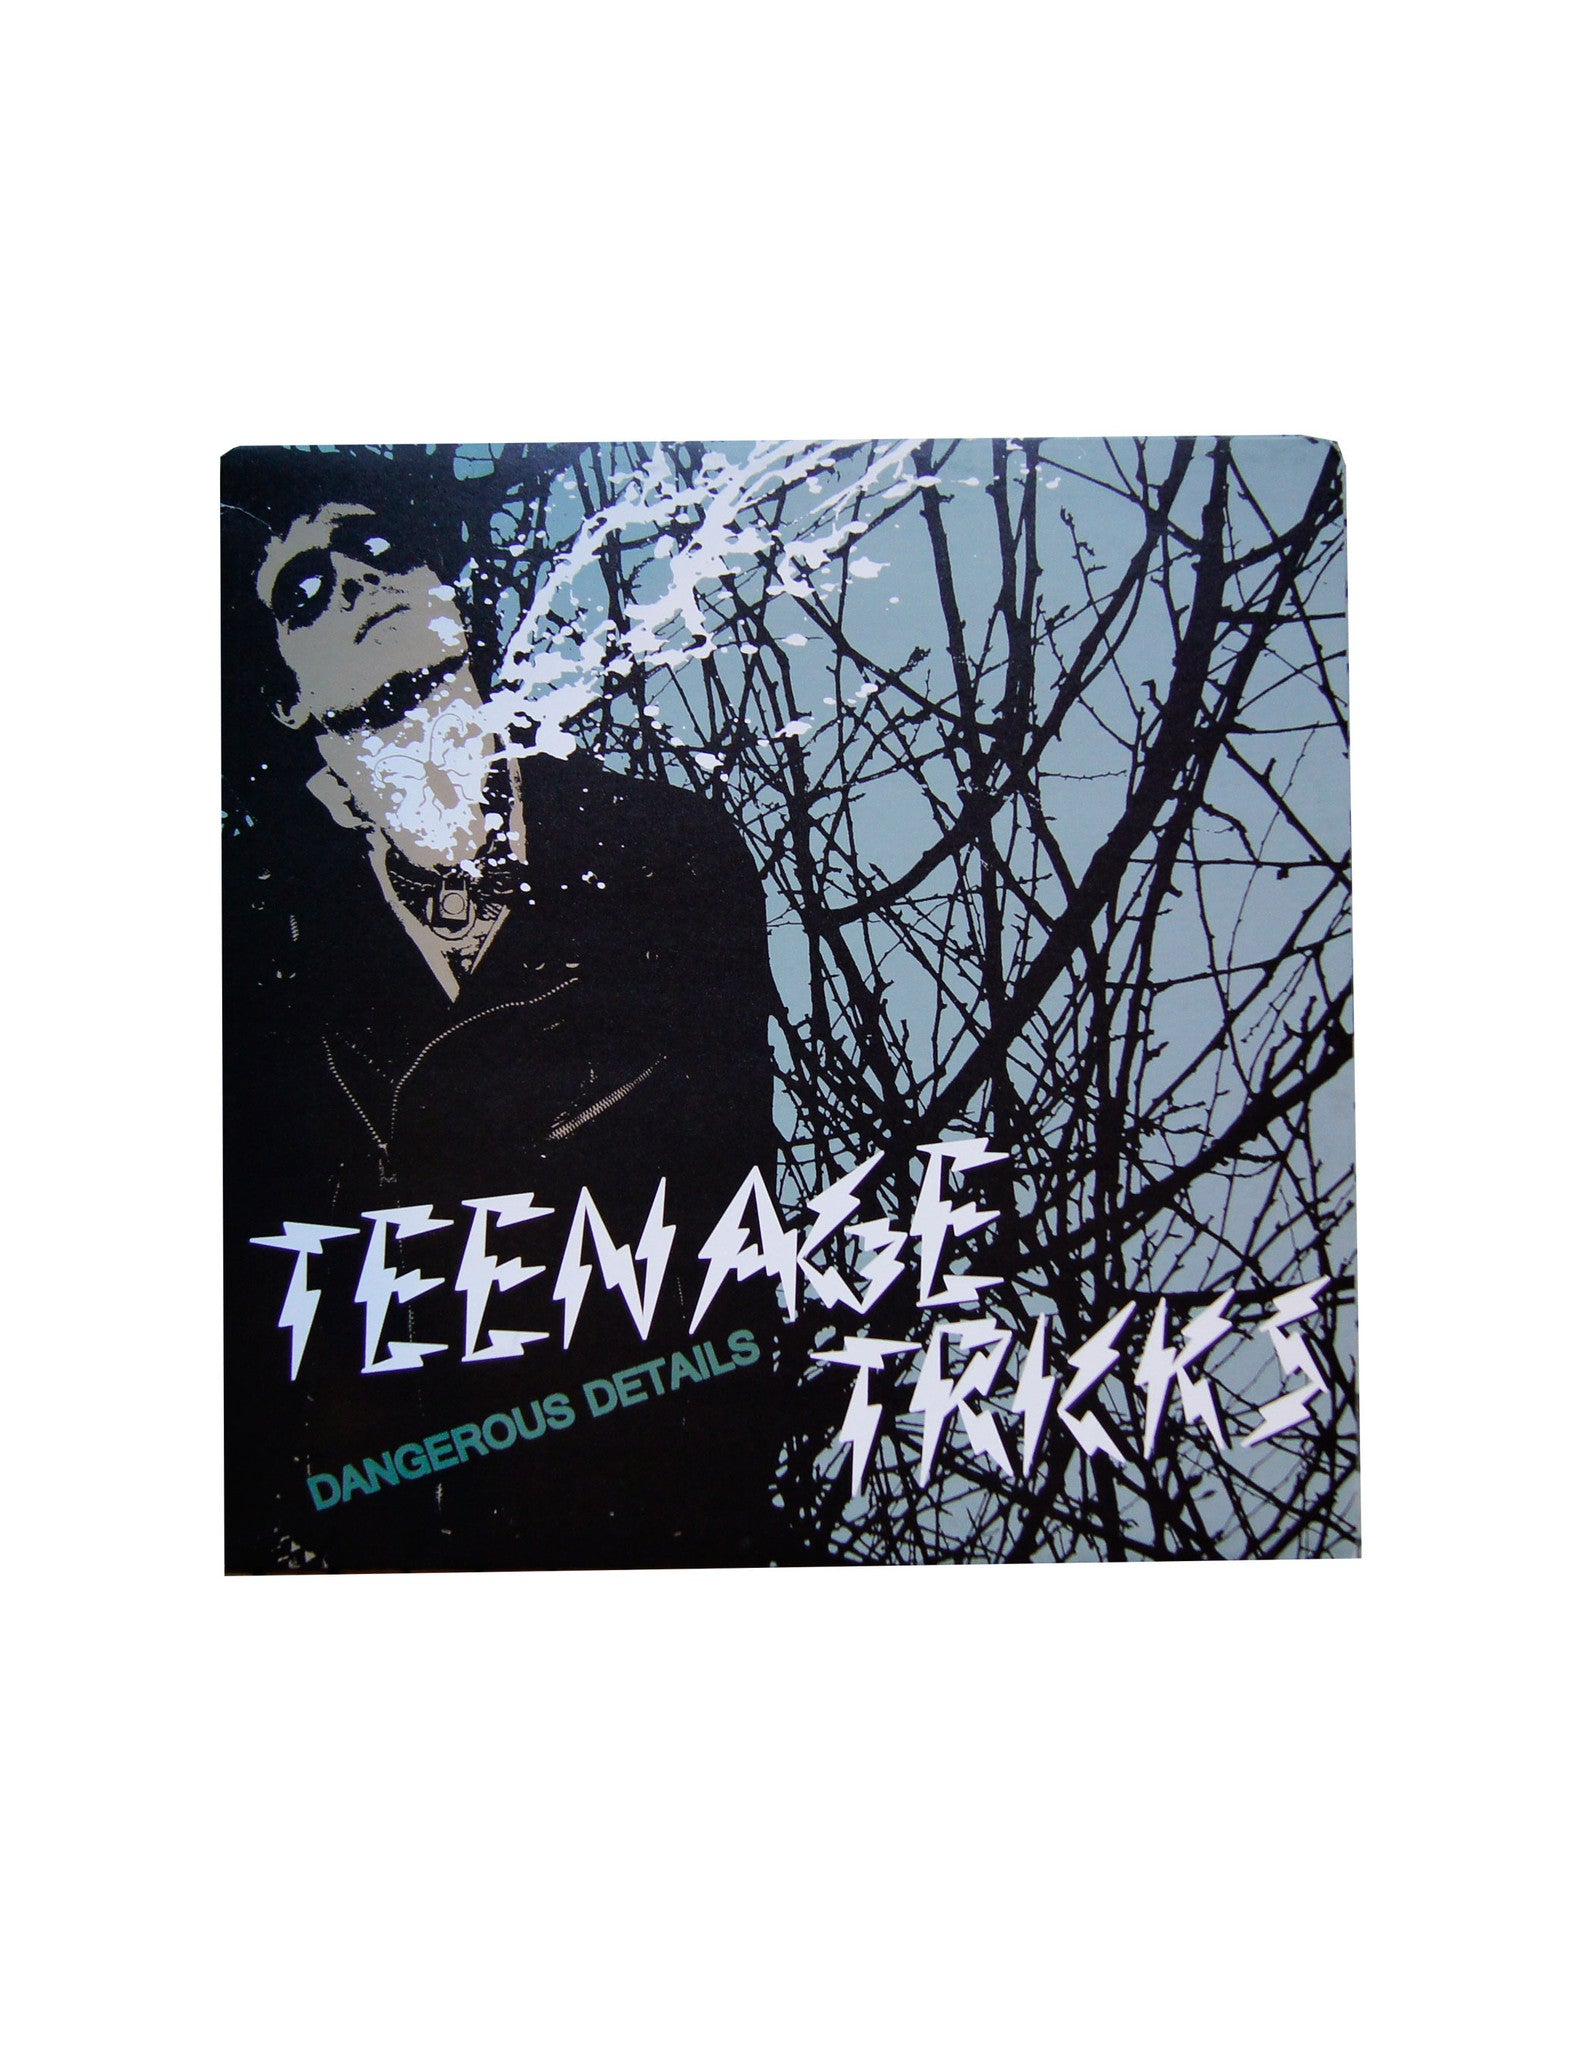 Teenage Tricks - Dangerous  Details